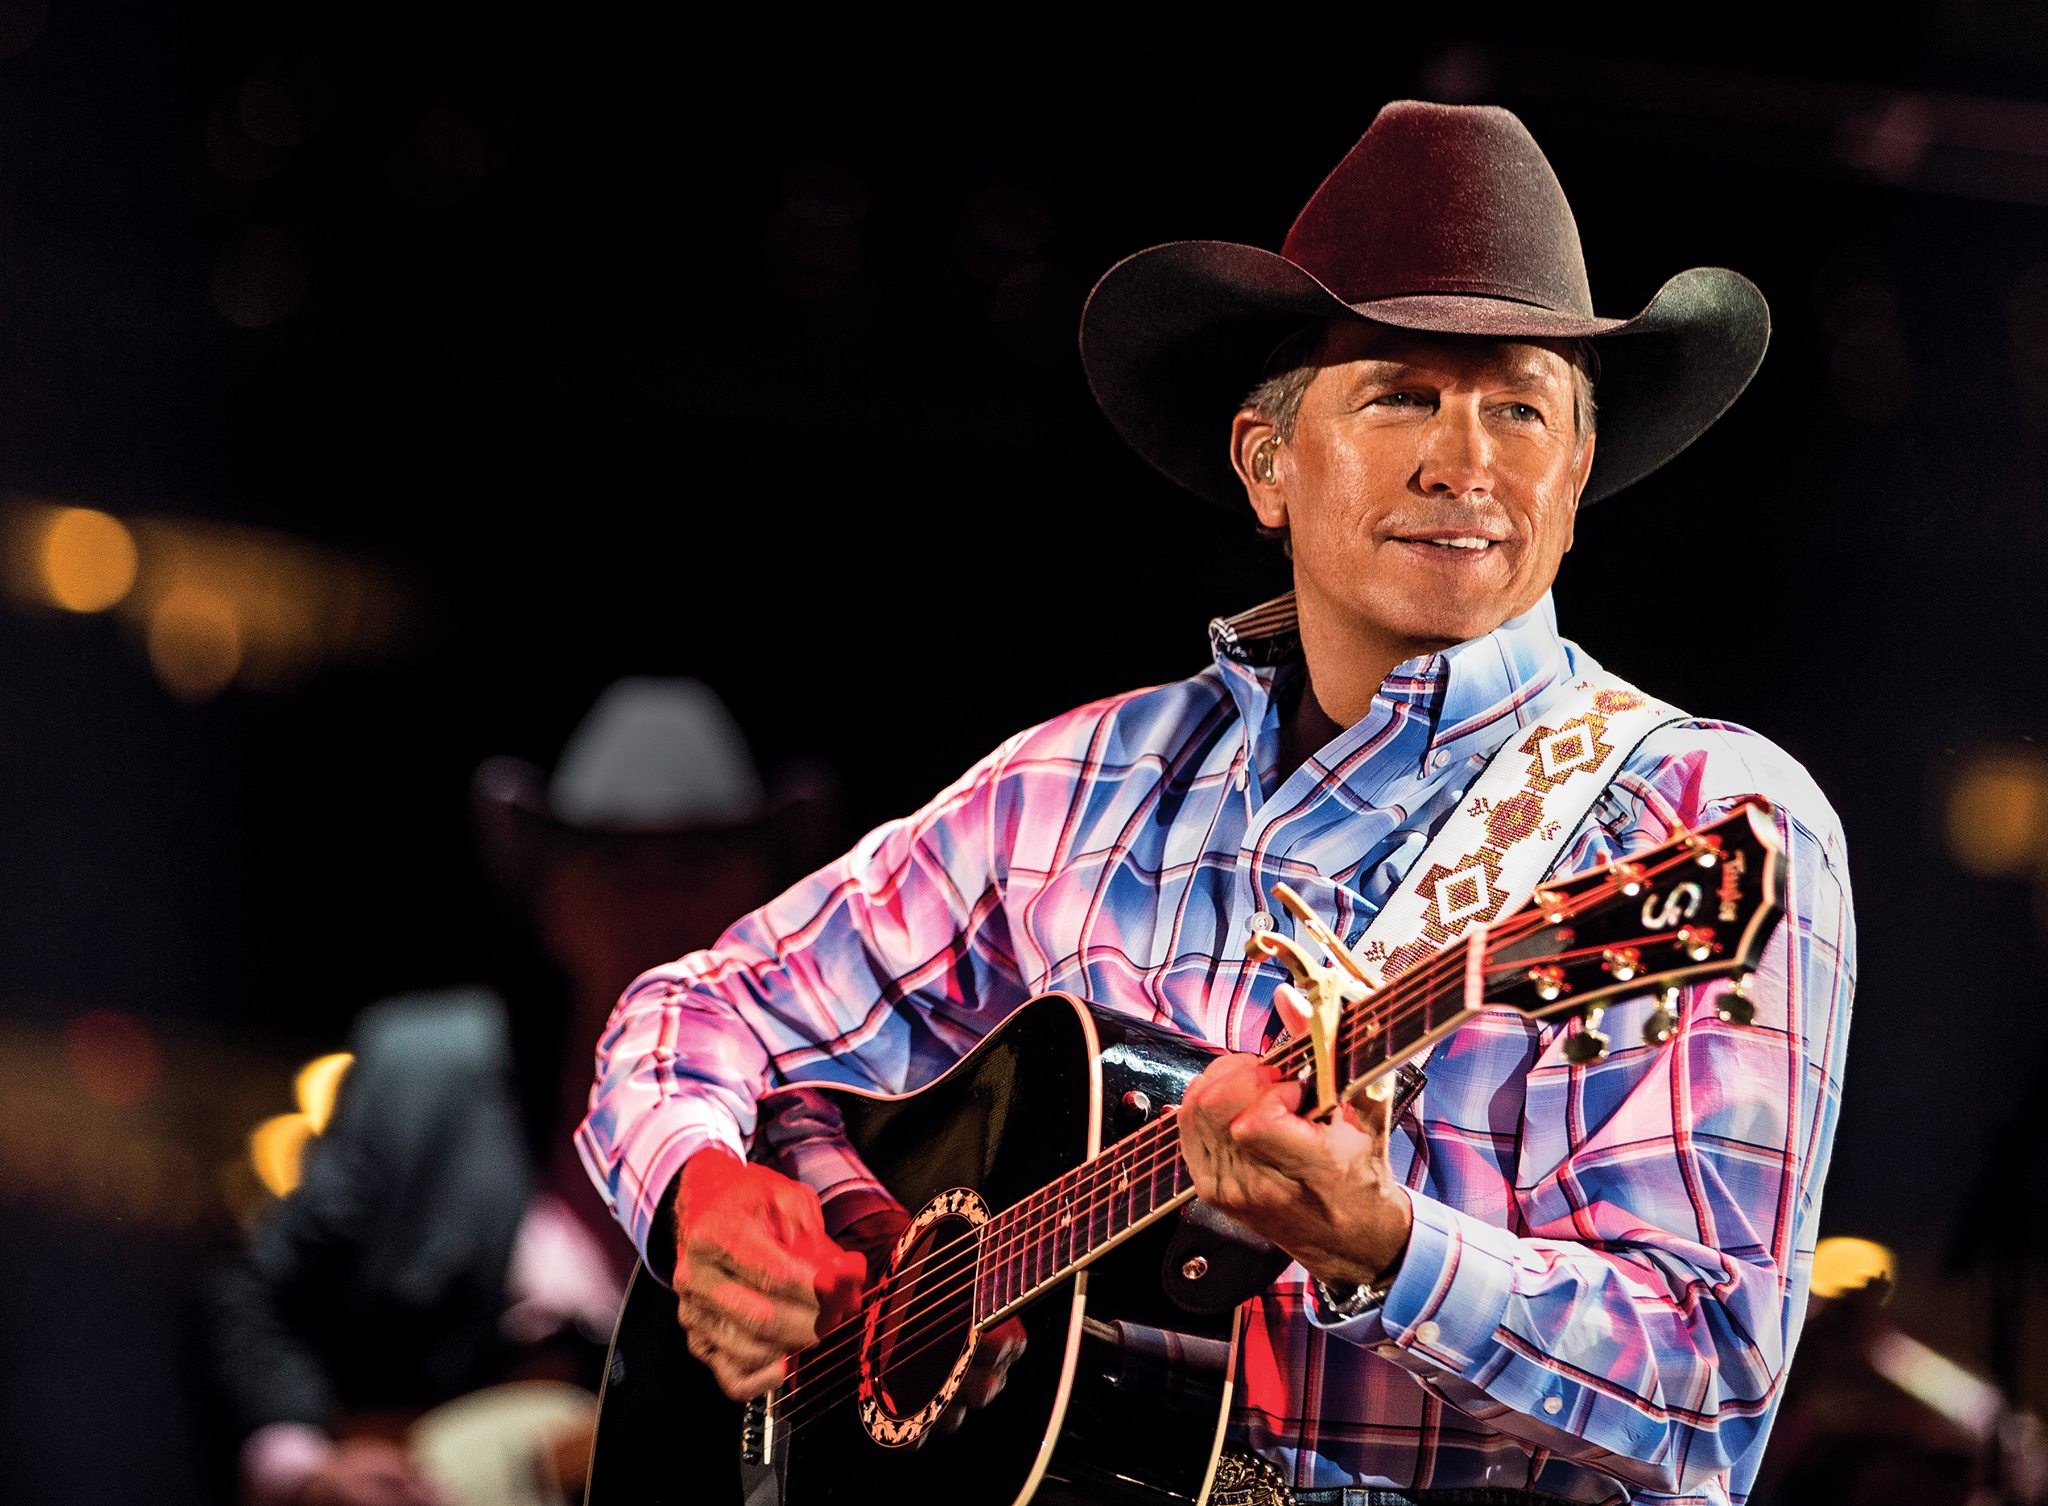 george strait the king of country The undeniable king of country music, strait has a music career spanning more than 30 years includes 60 no 1 singles, more than any other artist in any genre and boasts 33 platinum or multi.